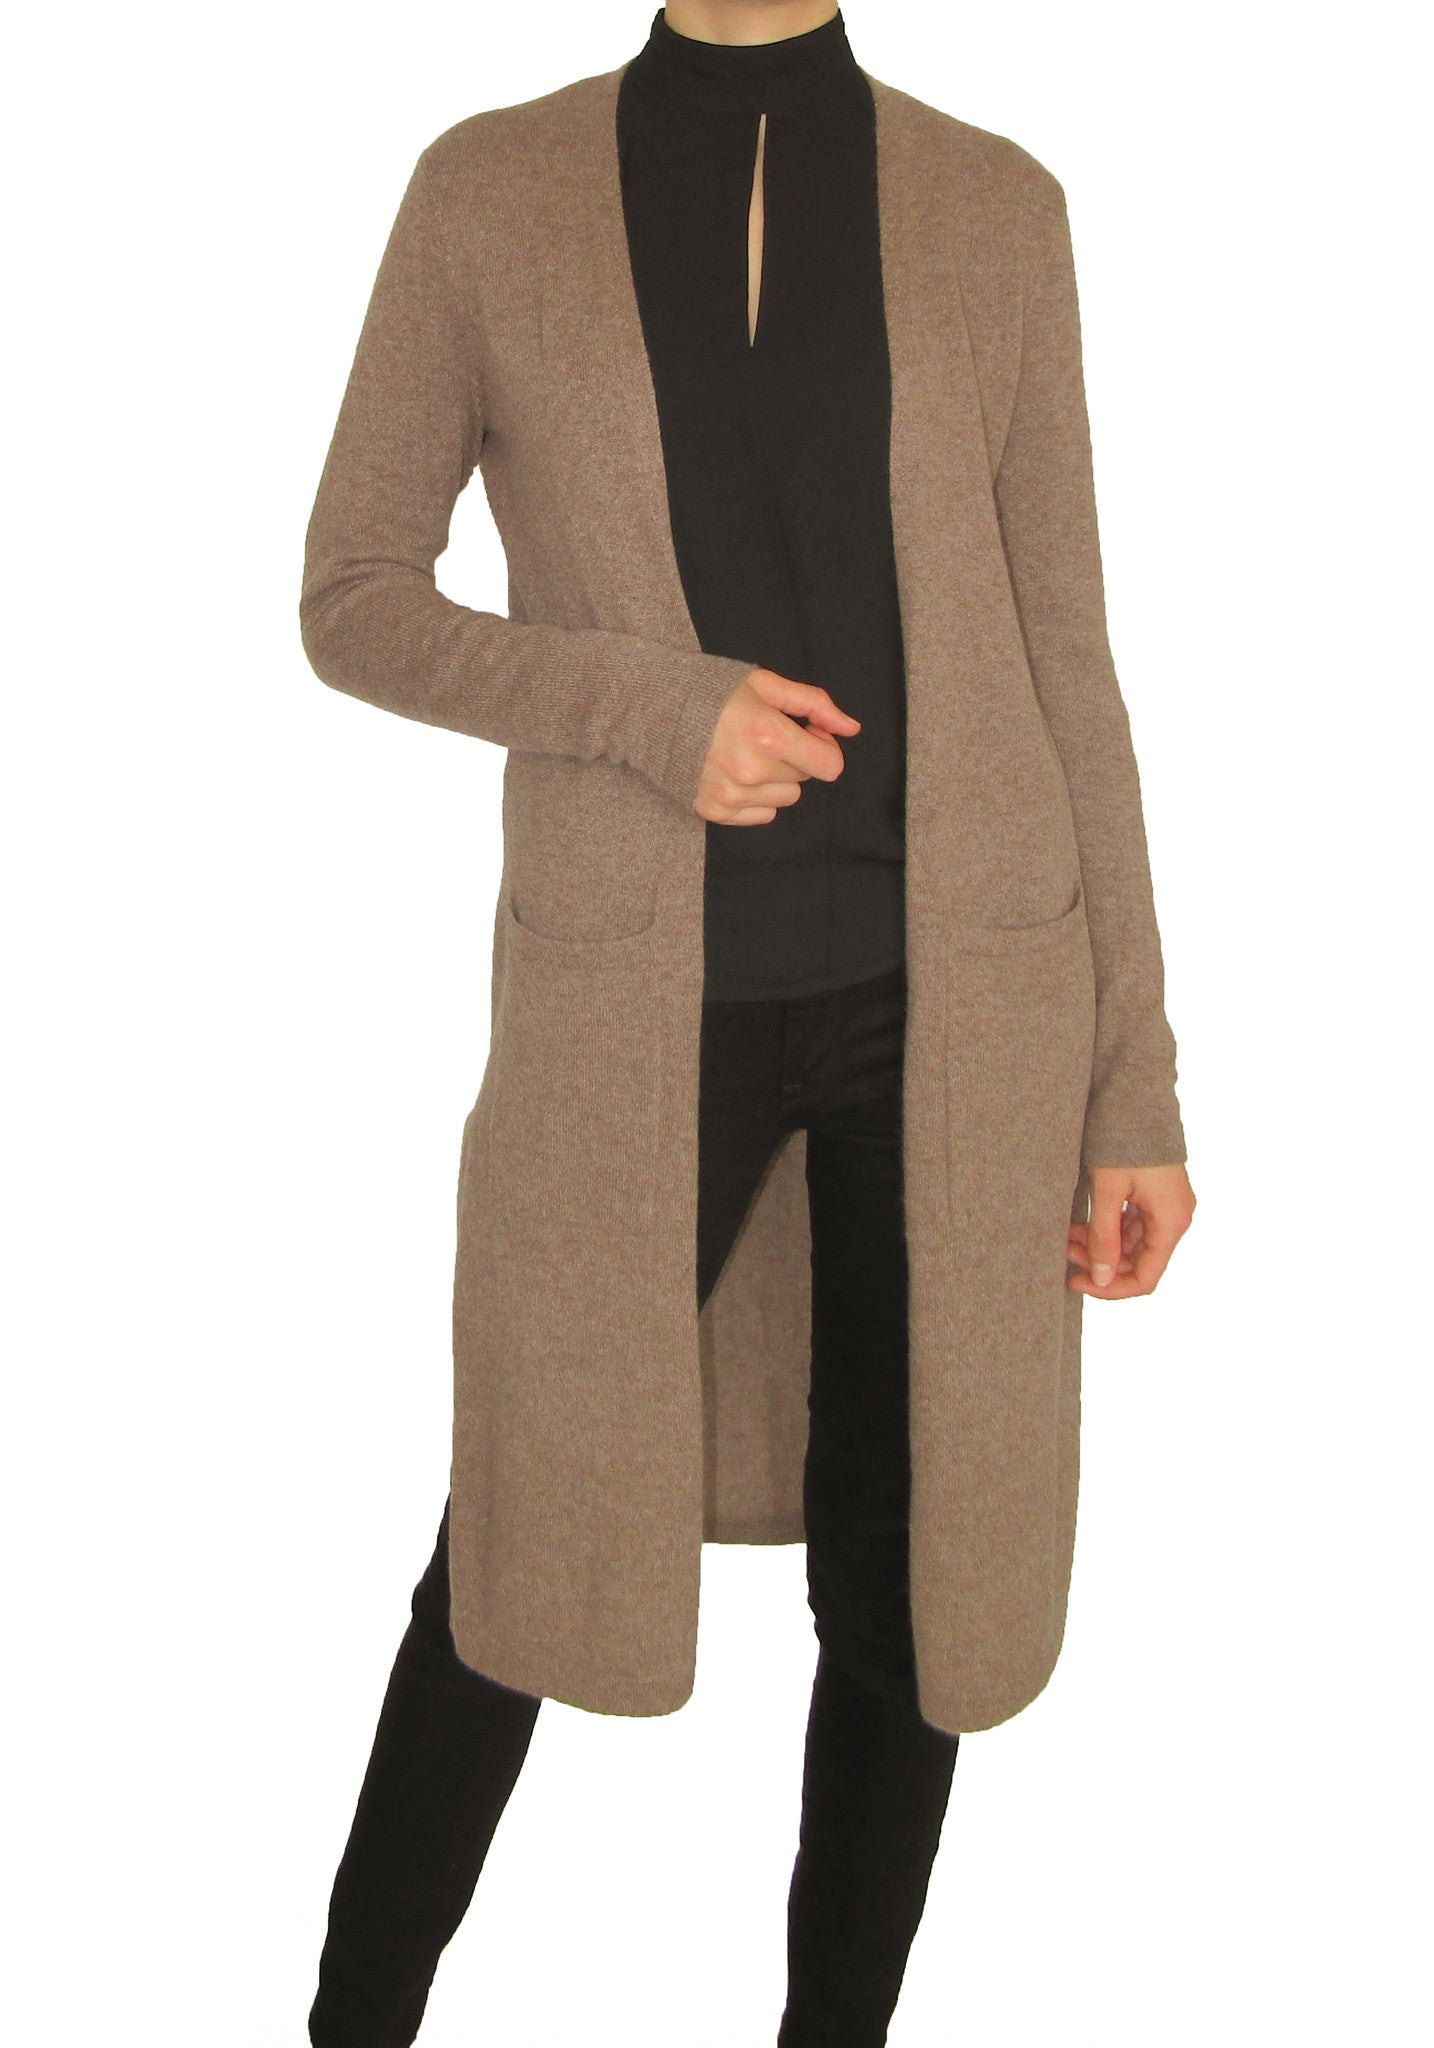 CashmereHome Cashmere Cardigan Women